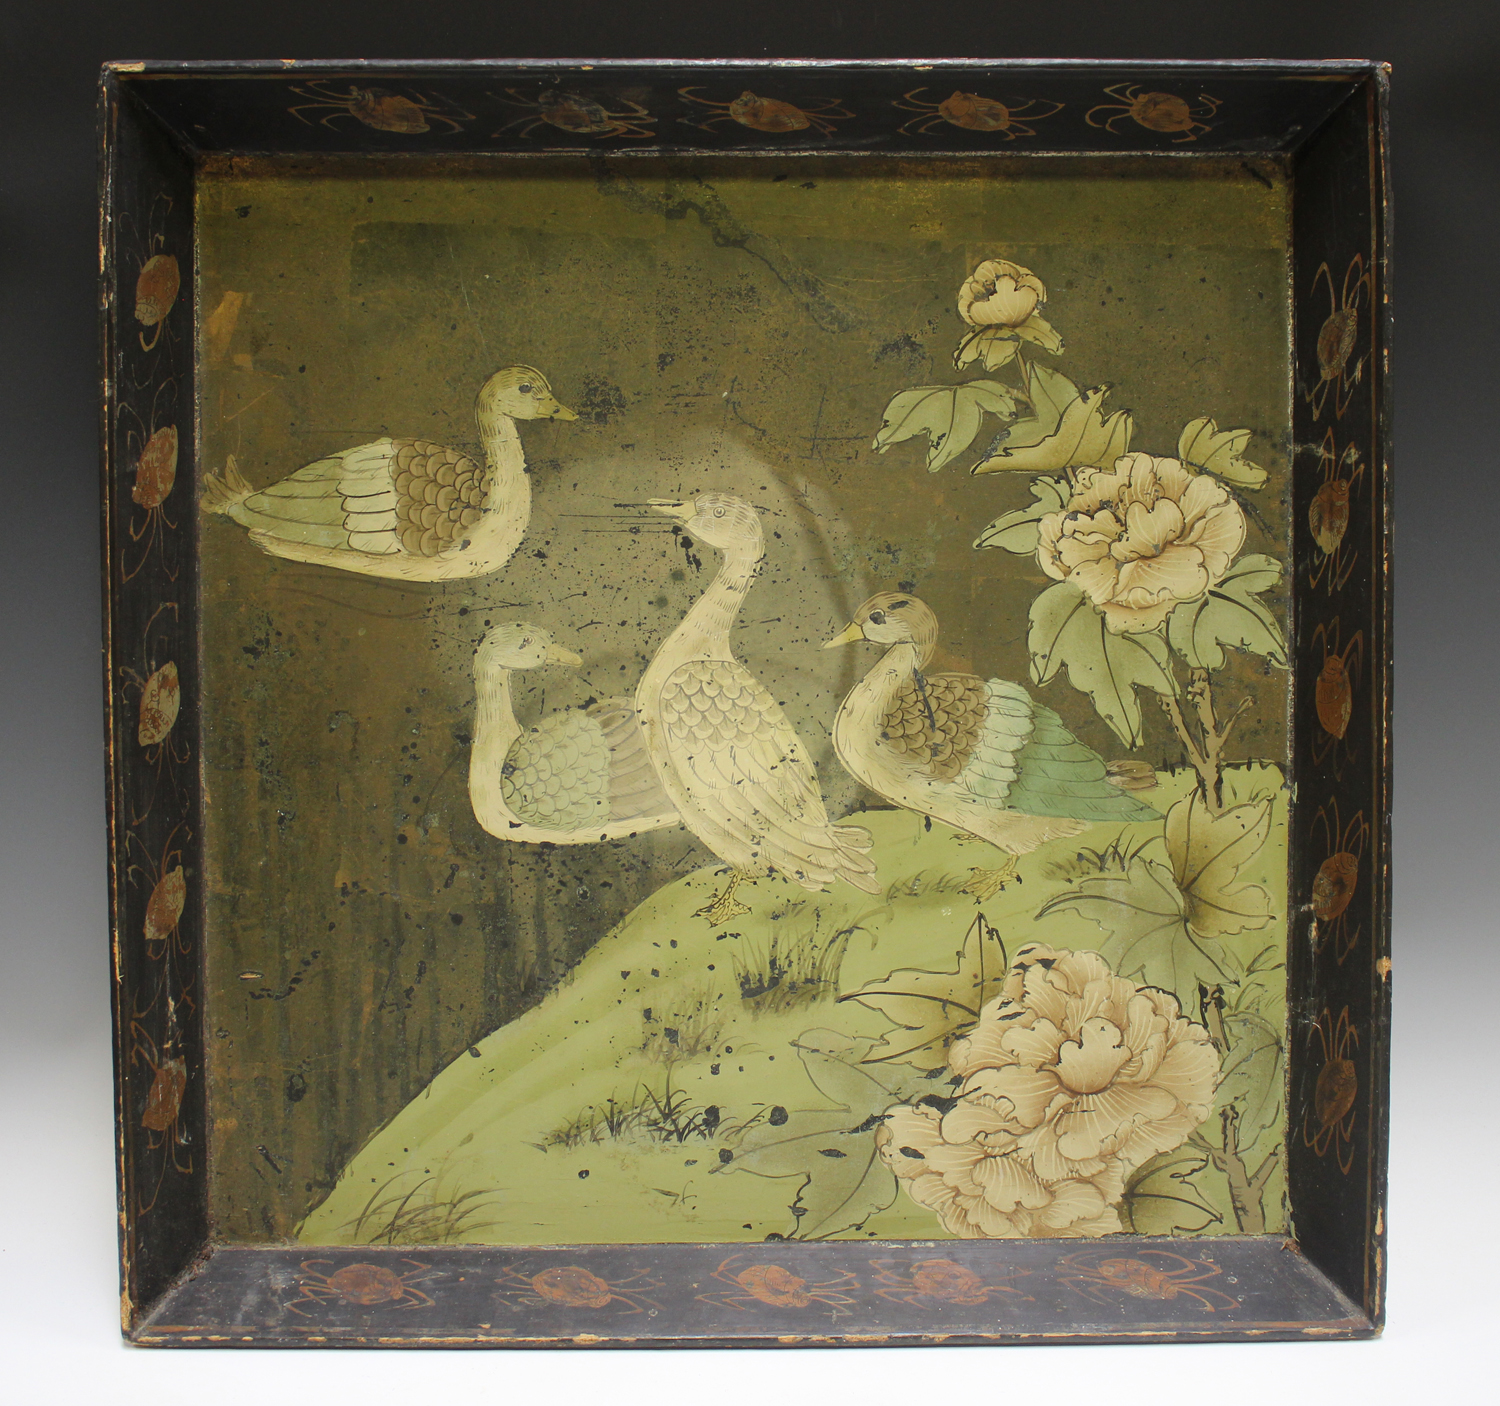 An early 20th century Chinese lacquered gallery tray, painted with ducks at a lakeside, width 54cm.